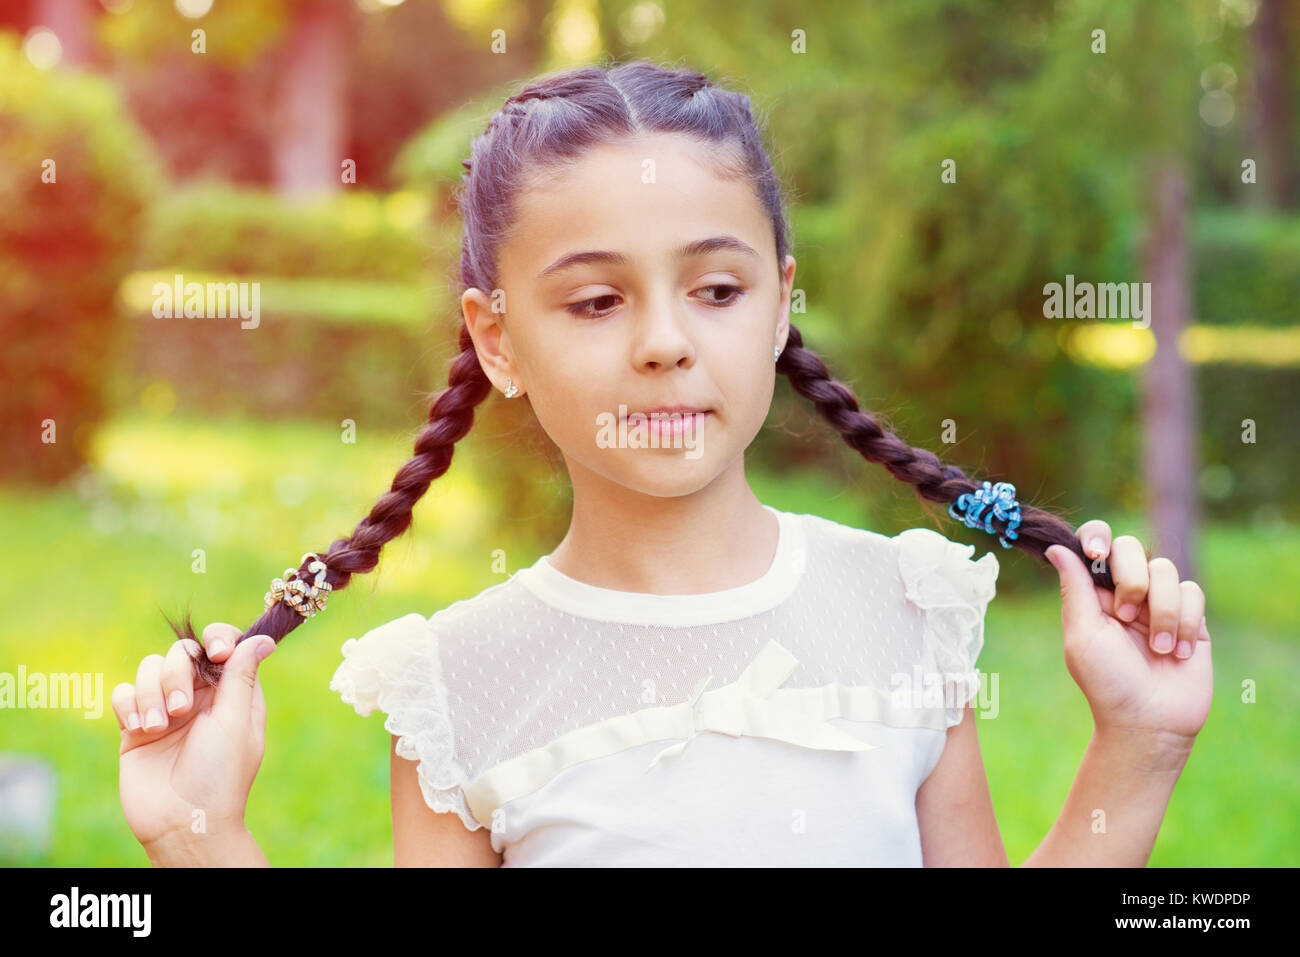 Interesting phrase Cute teen pigtails captions think